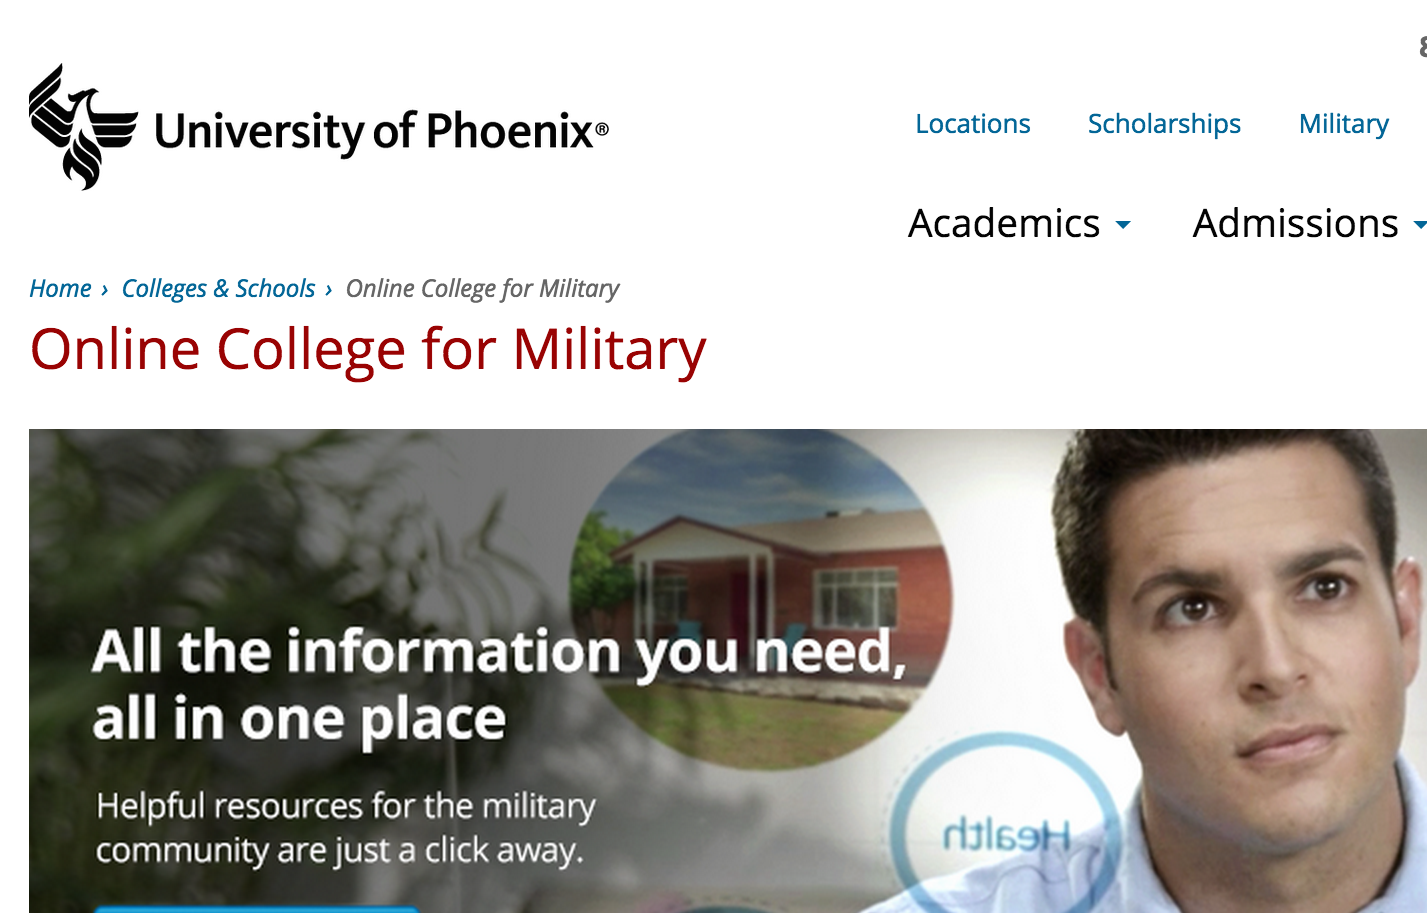 University Of Phoenix Barred From Military Bases, Using New Tuition Assistance Funds